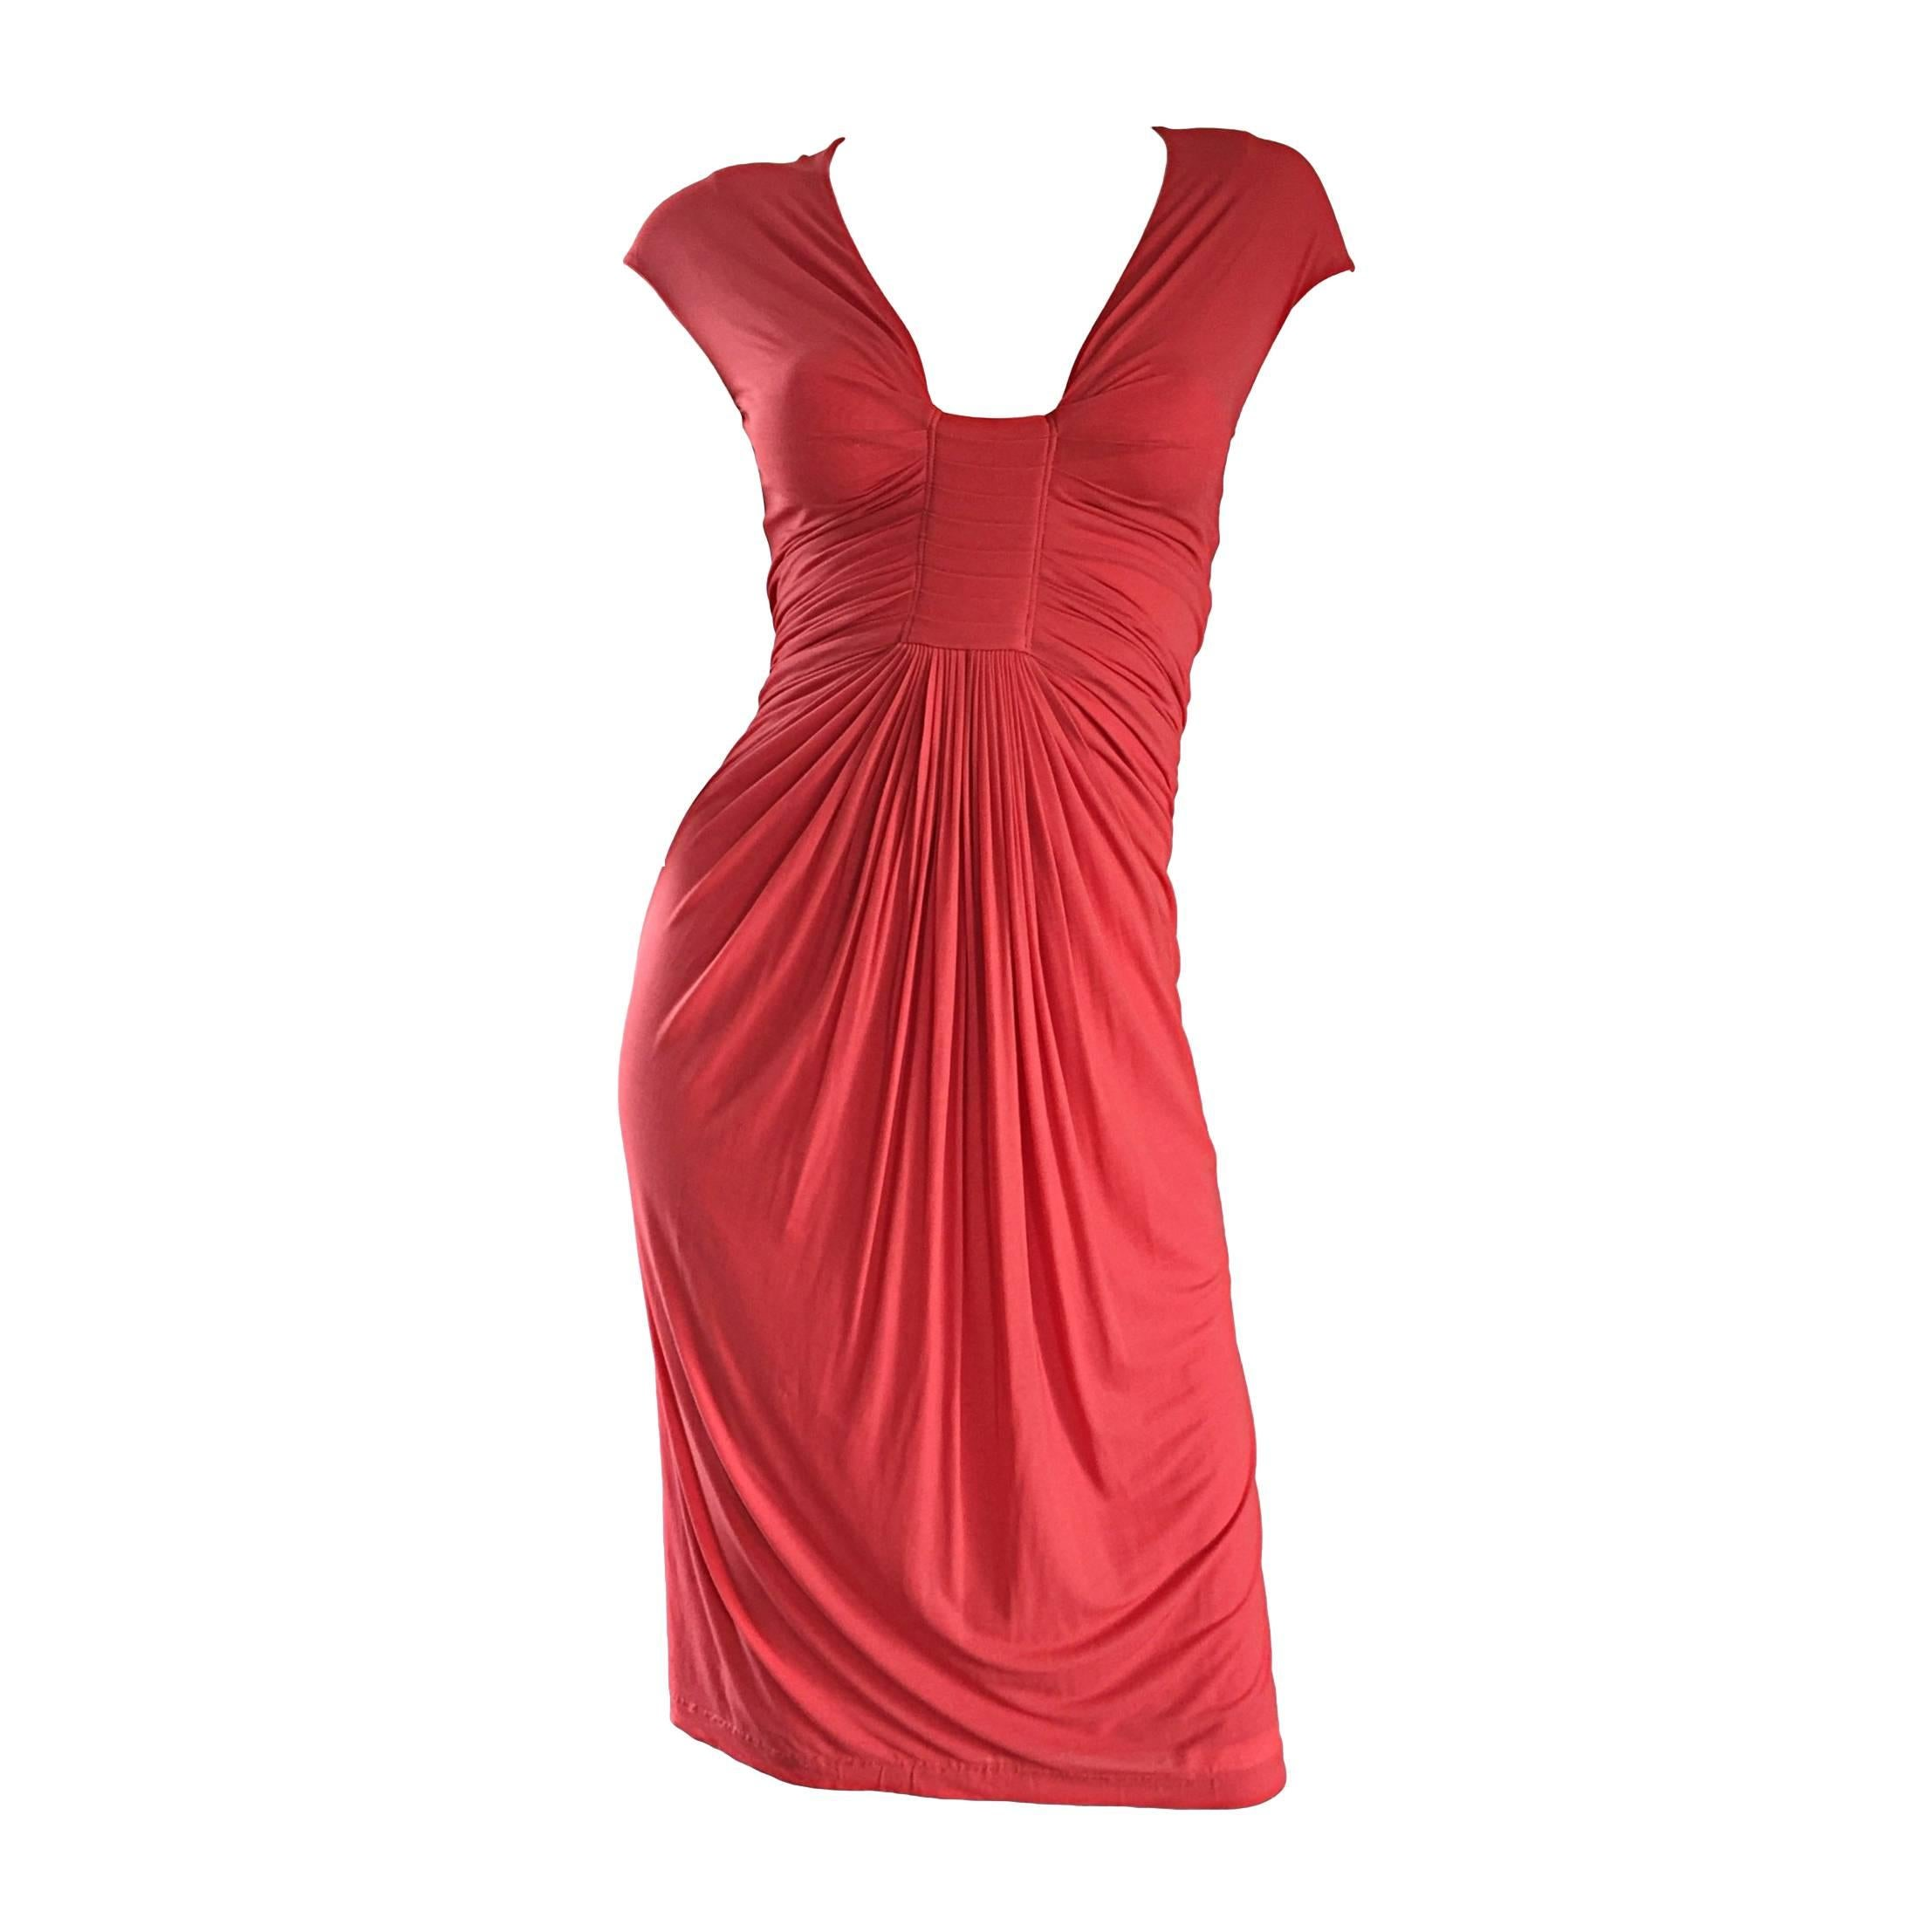 Donna Karan Collection Coral Pink Vintage 1990s Ruched Grecian Cocktail Dress